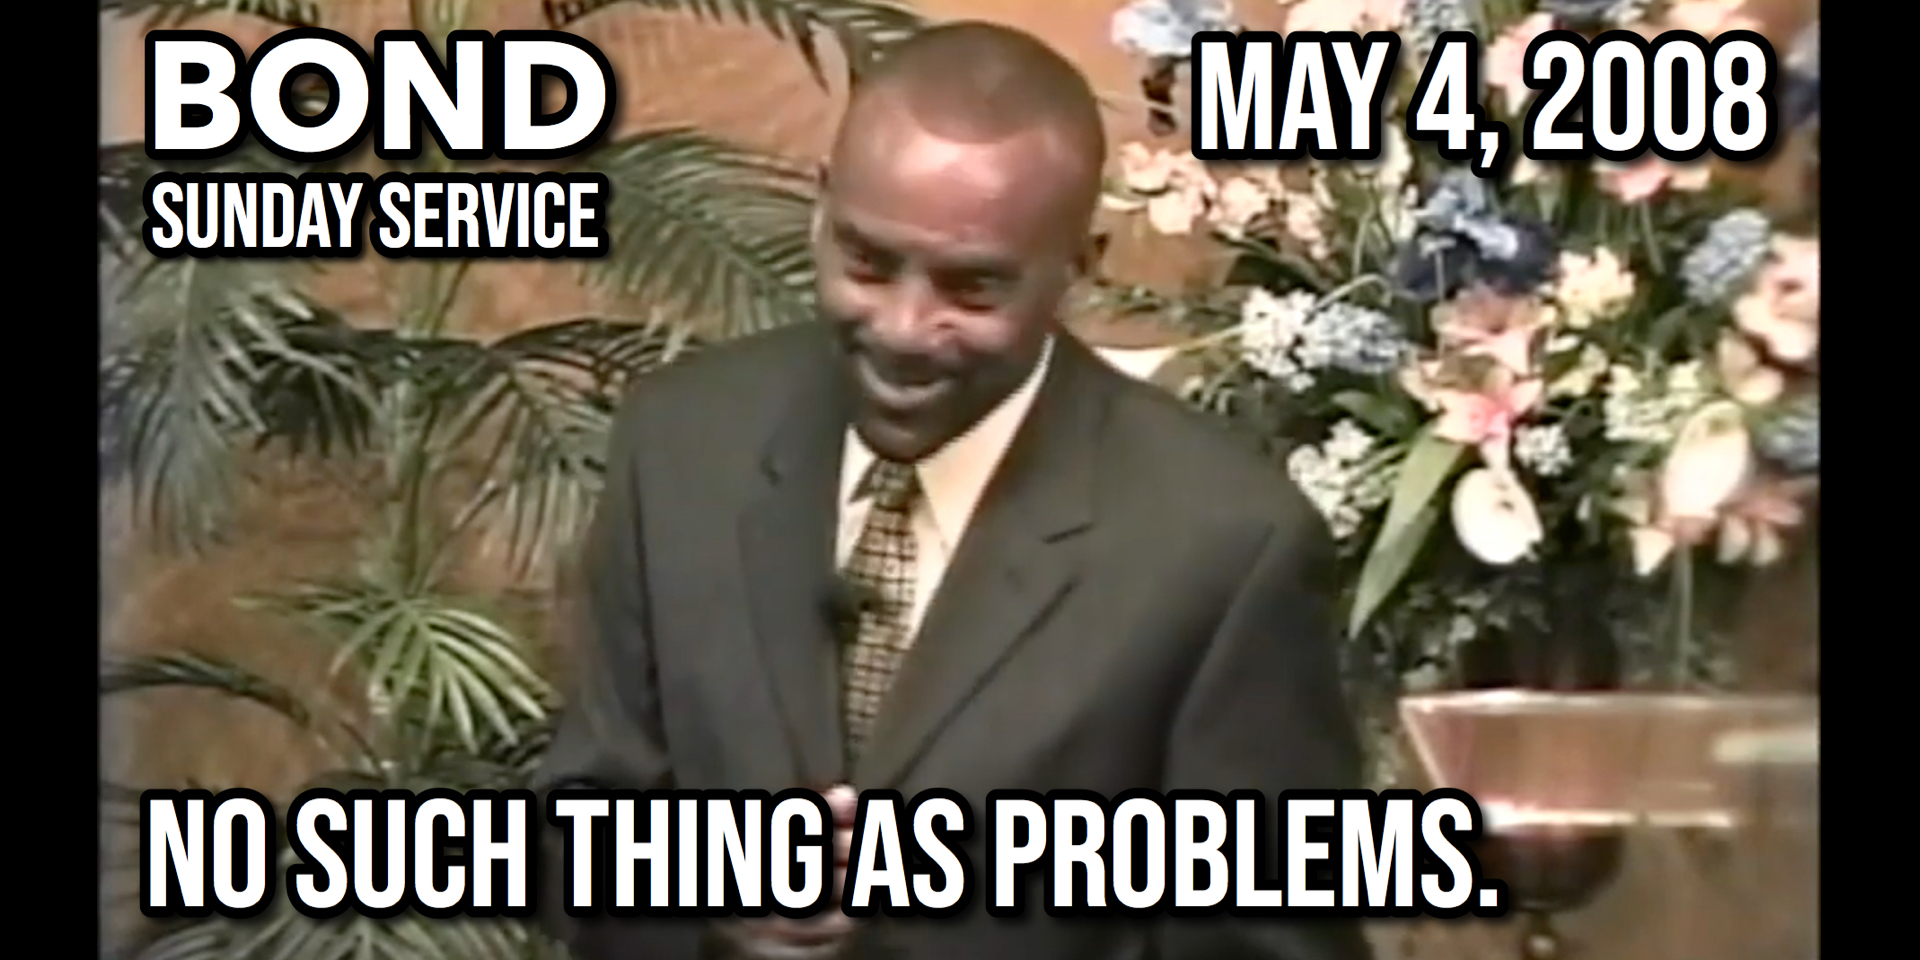 There's No Such Thing as Problems (Sunday Service, May 4, 2008)